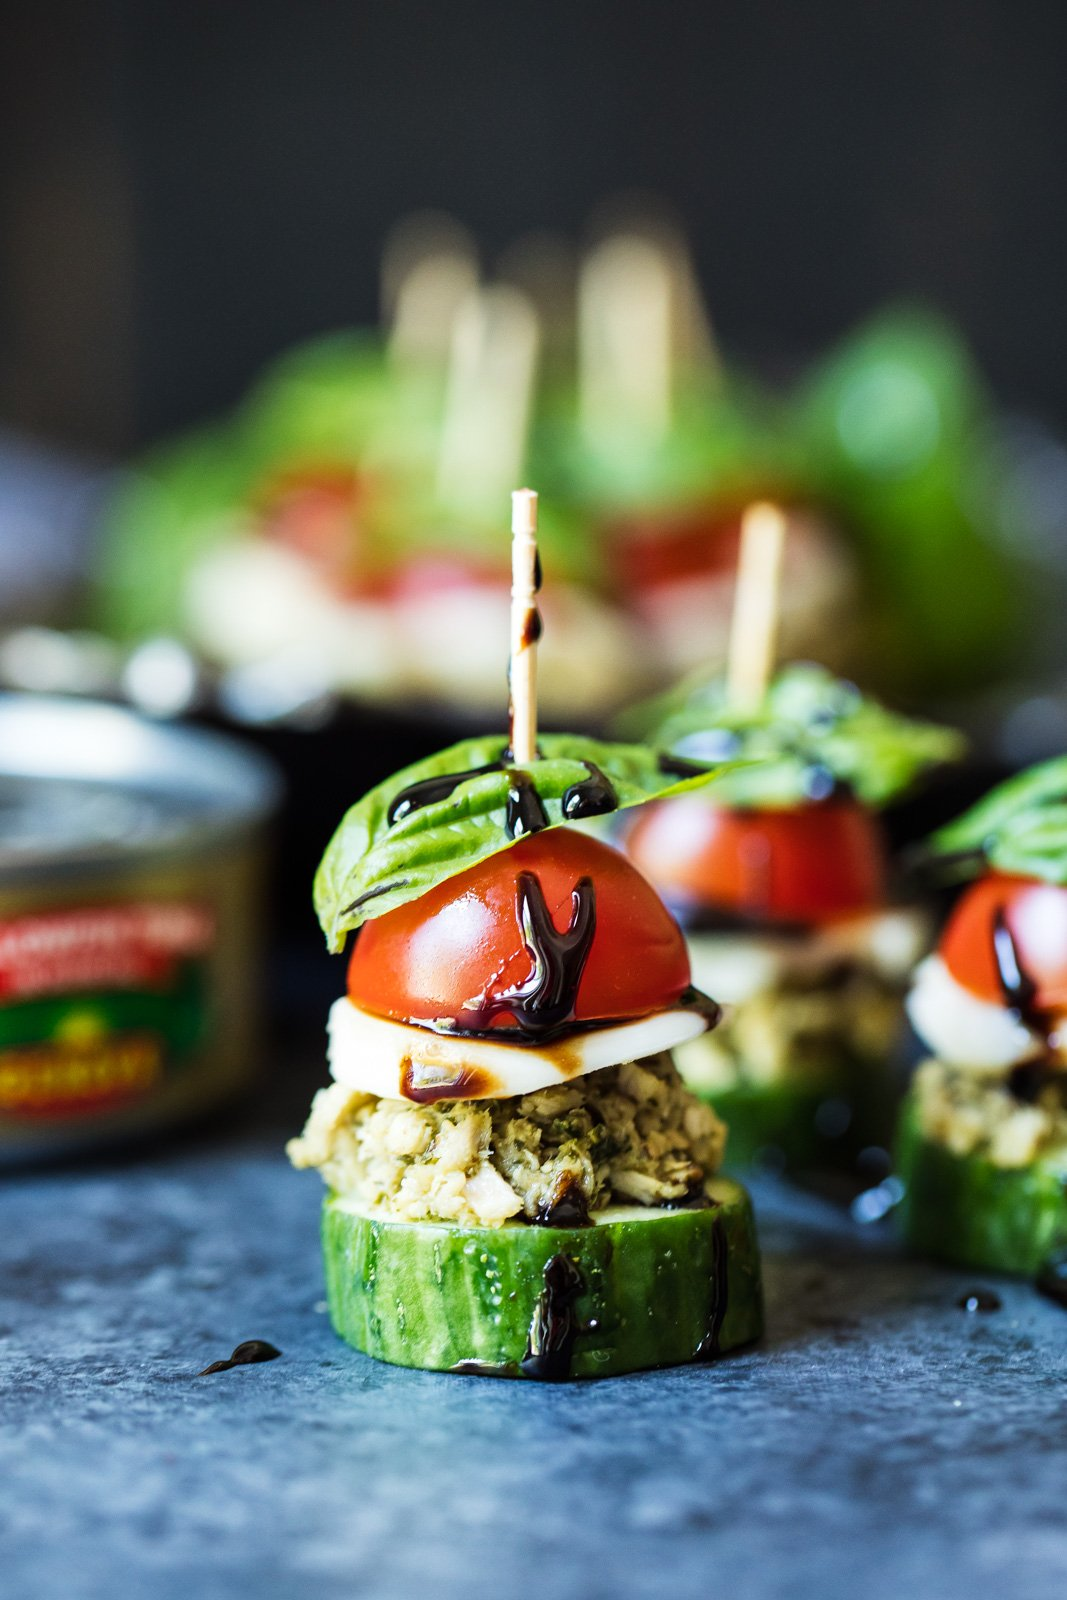 Quick and flavorful cucumber bites topped with delicious pesto flavored Genova tuna, fresh tomato and basil, creamy mozzarella, and a drizzle of homemade balsamic reduction.